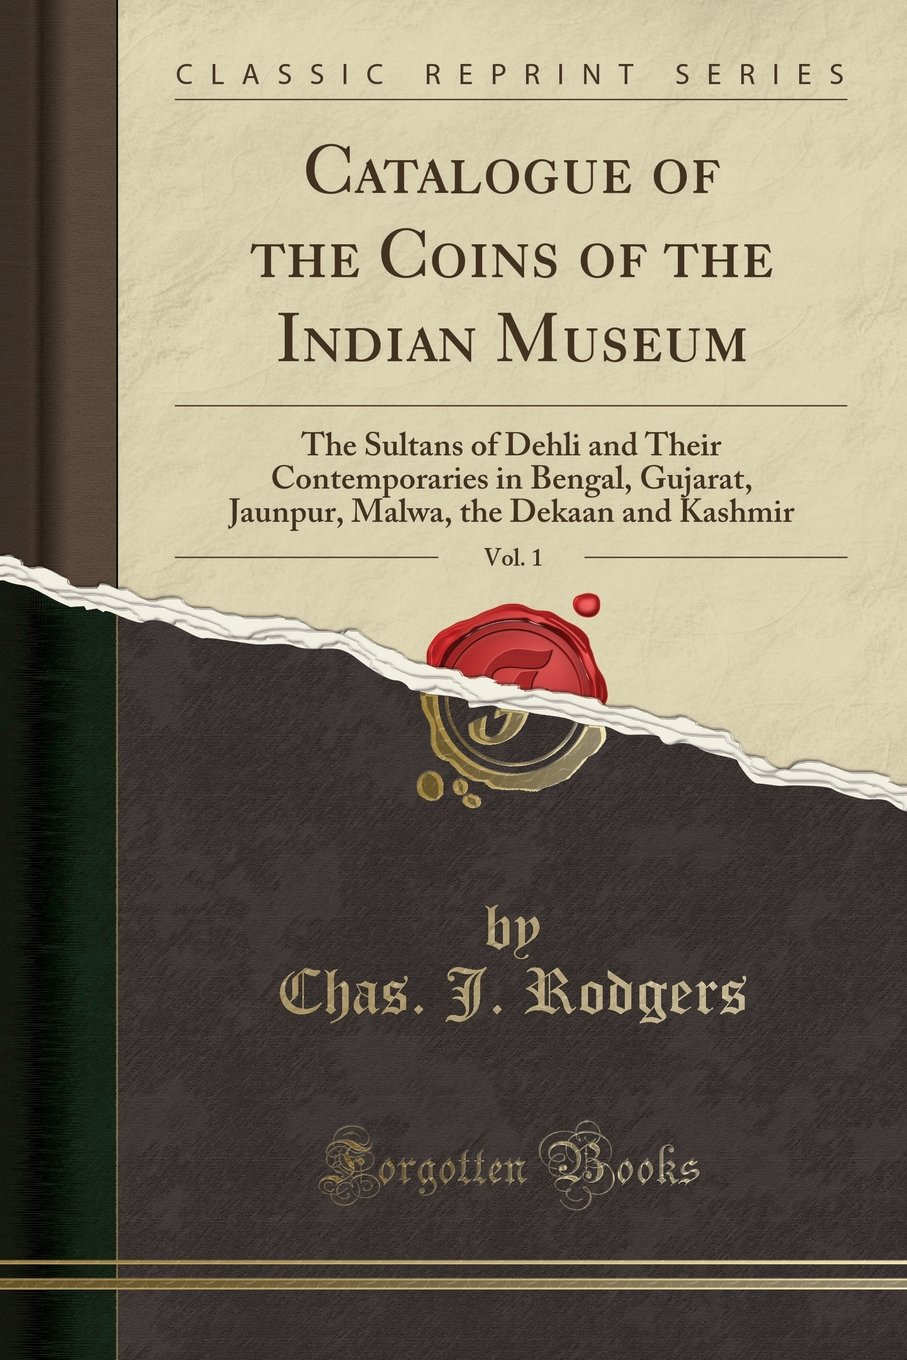 Catalogue of the Coins of the Indian Museum, Vol. 1: The Sultans of Dehli and Their Contemporaries in Bengal, Gujarat, Jaunpur, Malwa, the Dekaan and Kashmir (Classic Reprint) pdf